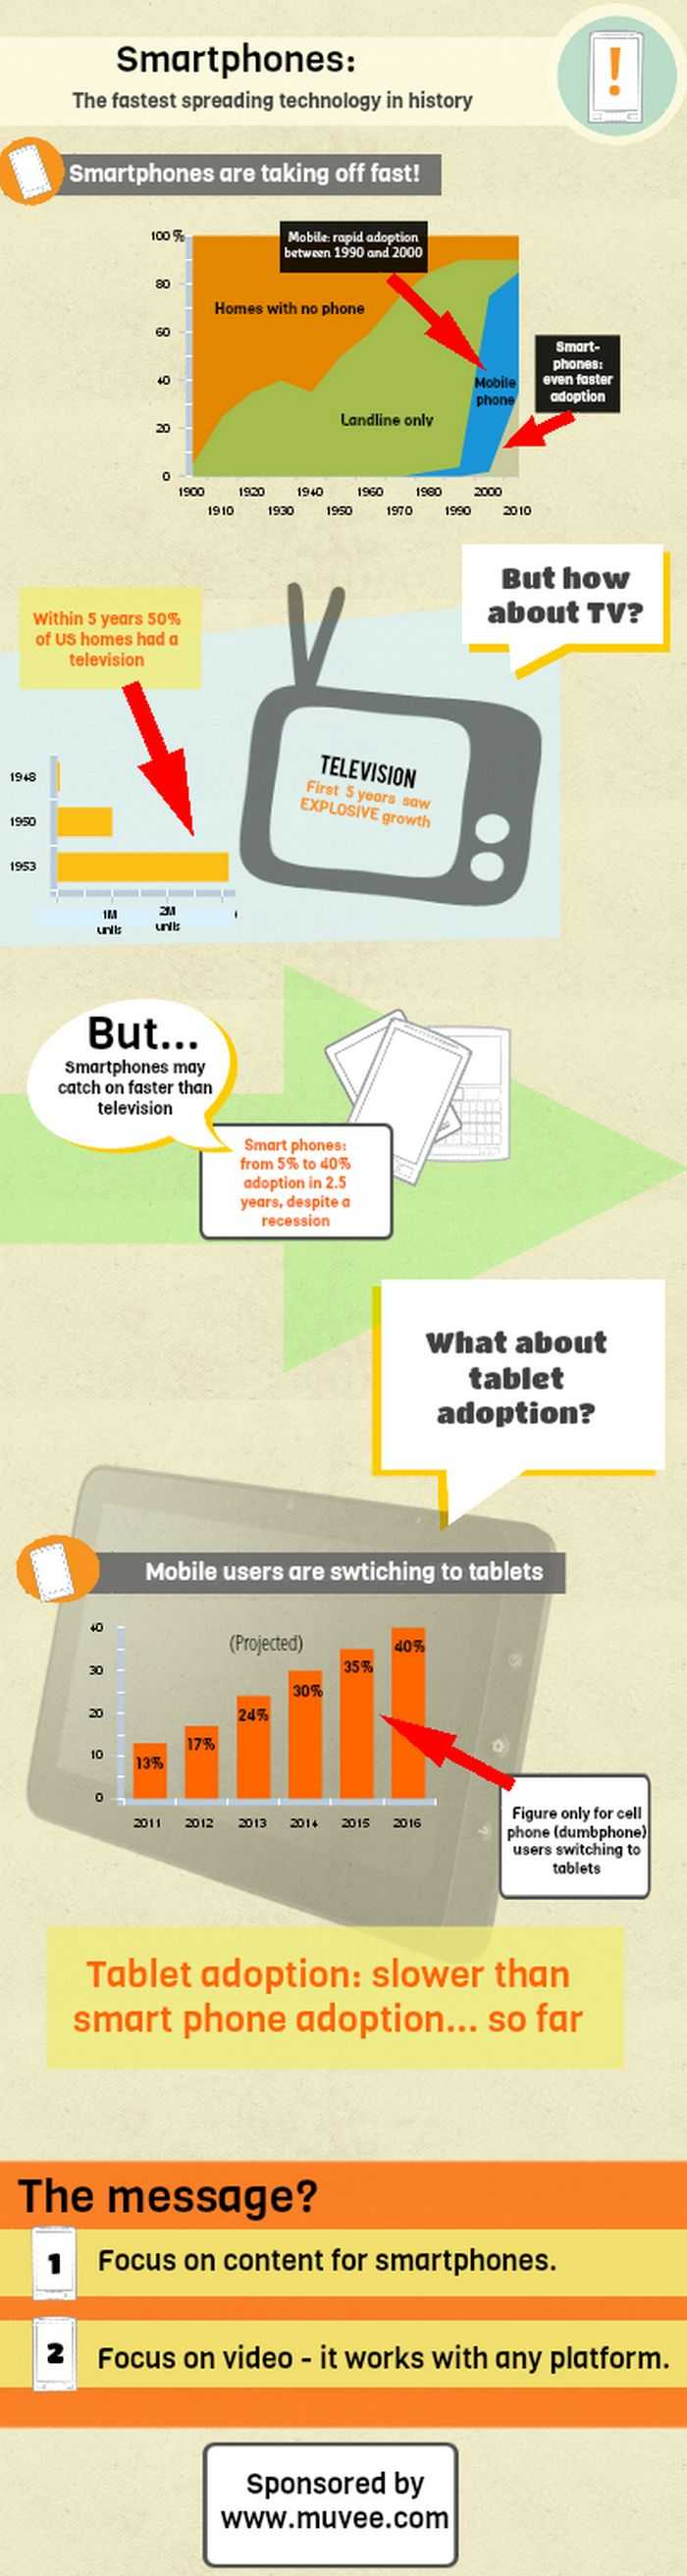 Smartphones: the fastest spreading technology in history? [infographic]